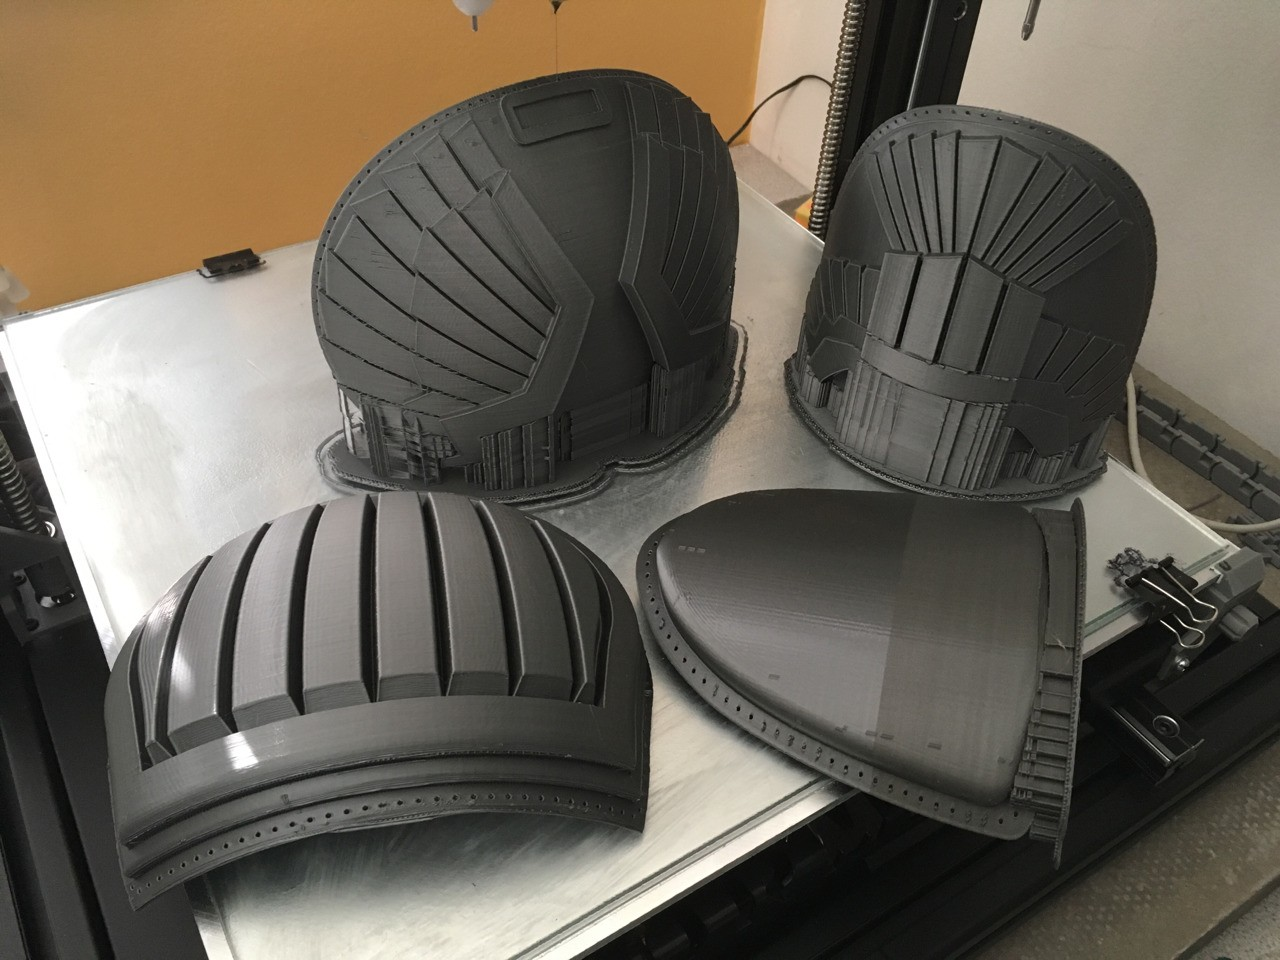 The hot sunny UK weather spell is nice, but it's playing havoc with the 3Dprinters and filament:-( and only 2 are reliable atm. #3dprint #cosplay #dredd #imagineering @idmimagineering https:www.idmmagineering.co.uk